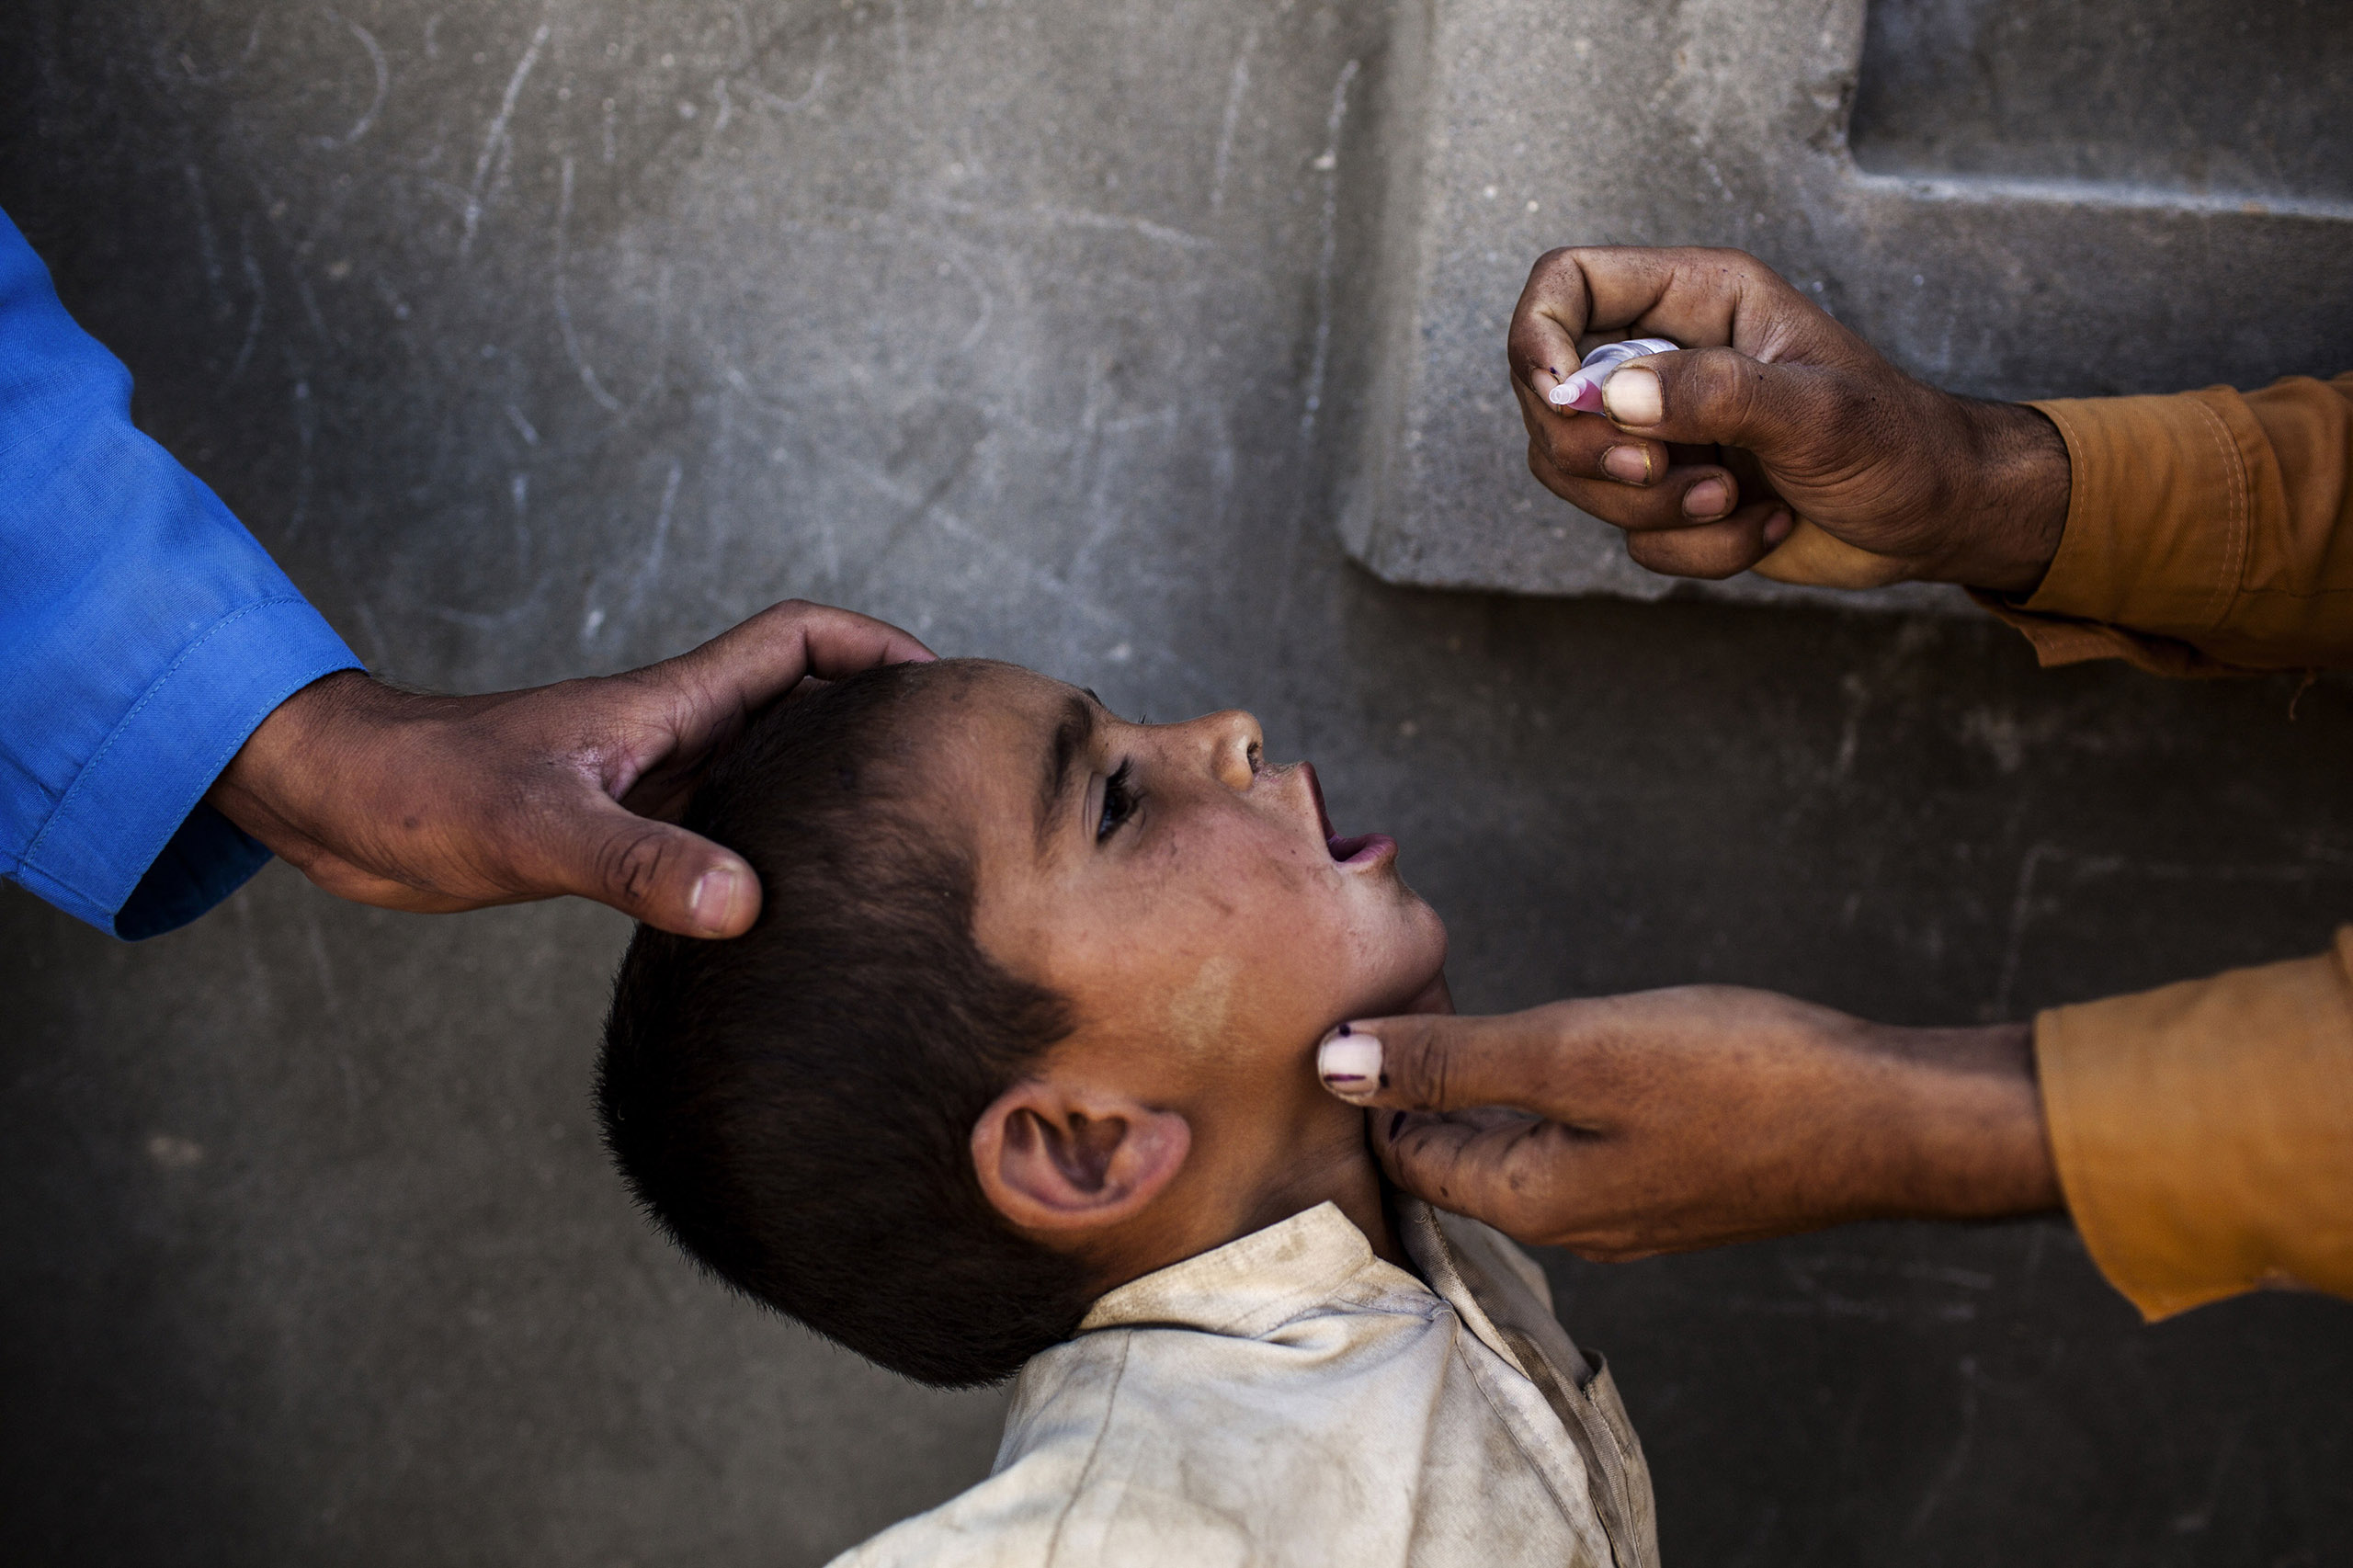 A child in Afghanistan is vaccinated against polio. Global rates of childhood vaccination have skyrocketed